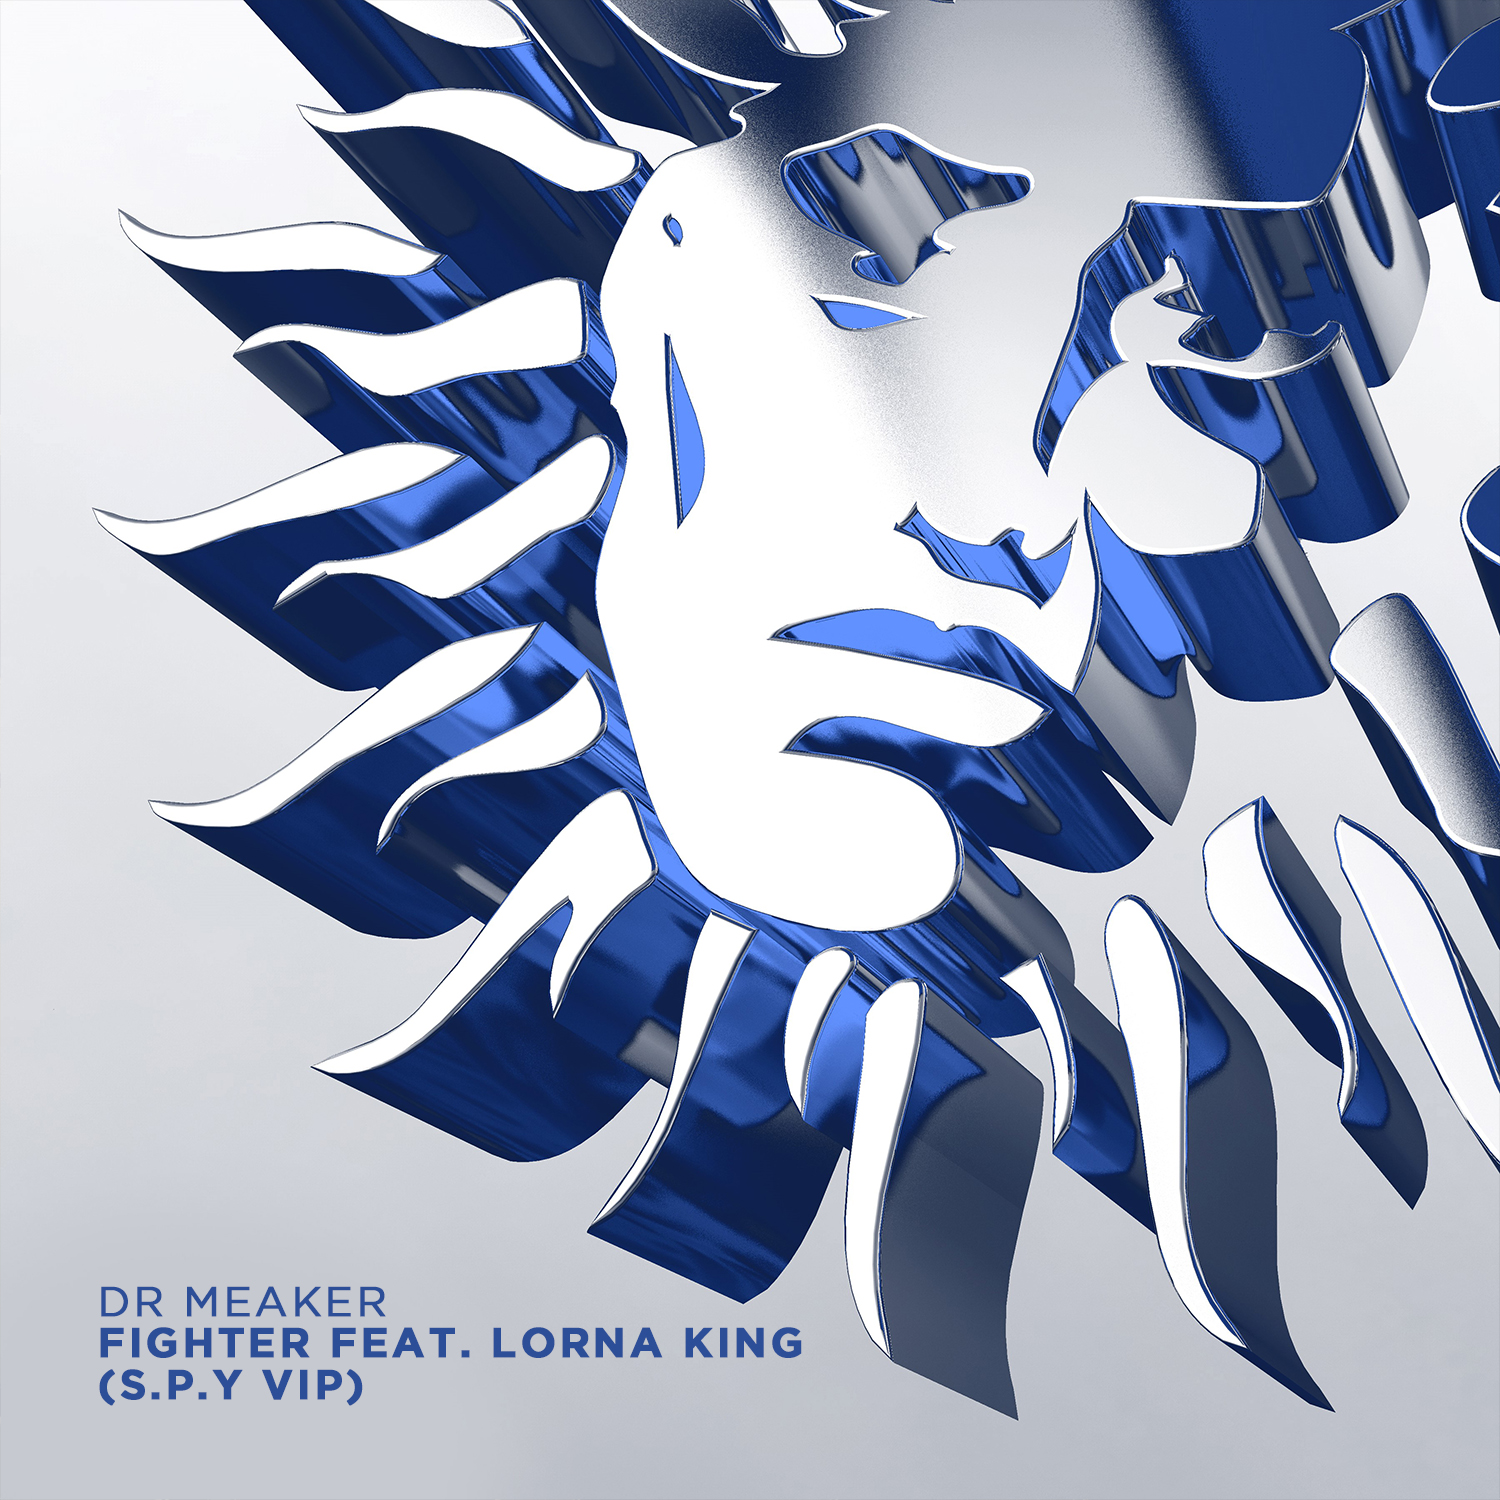 Fighter feat. Lorna King (S.P.Y VIP)